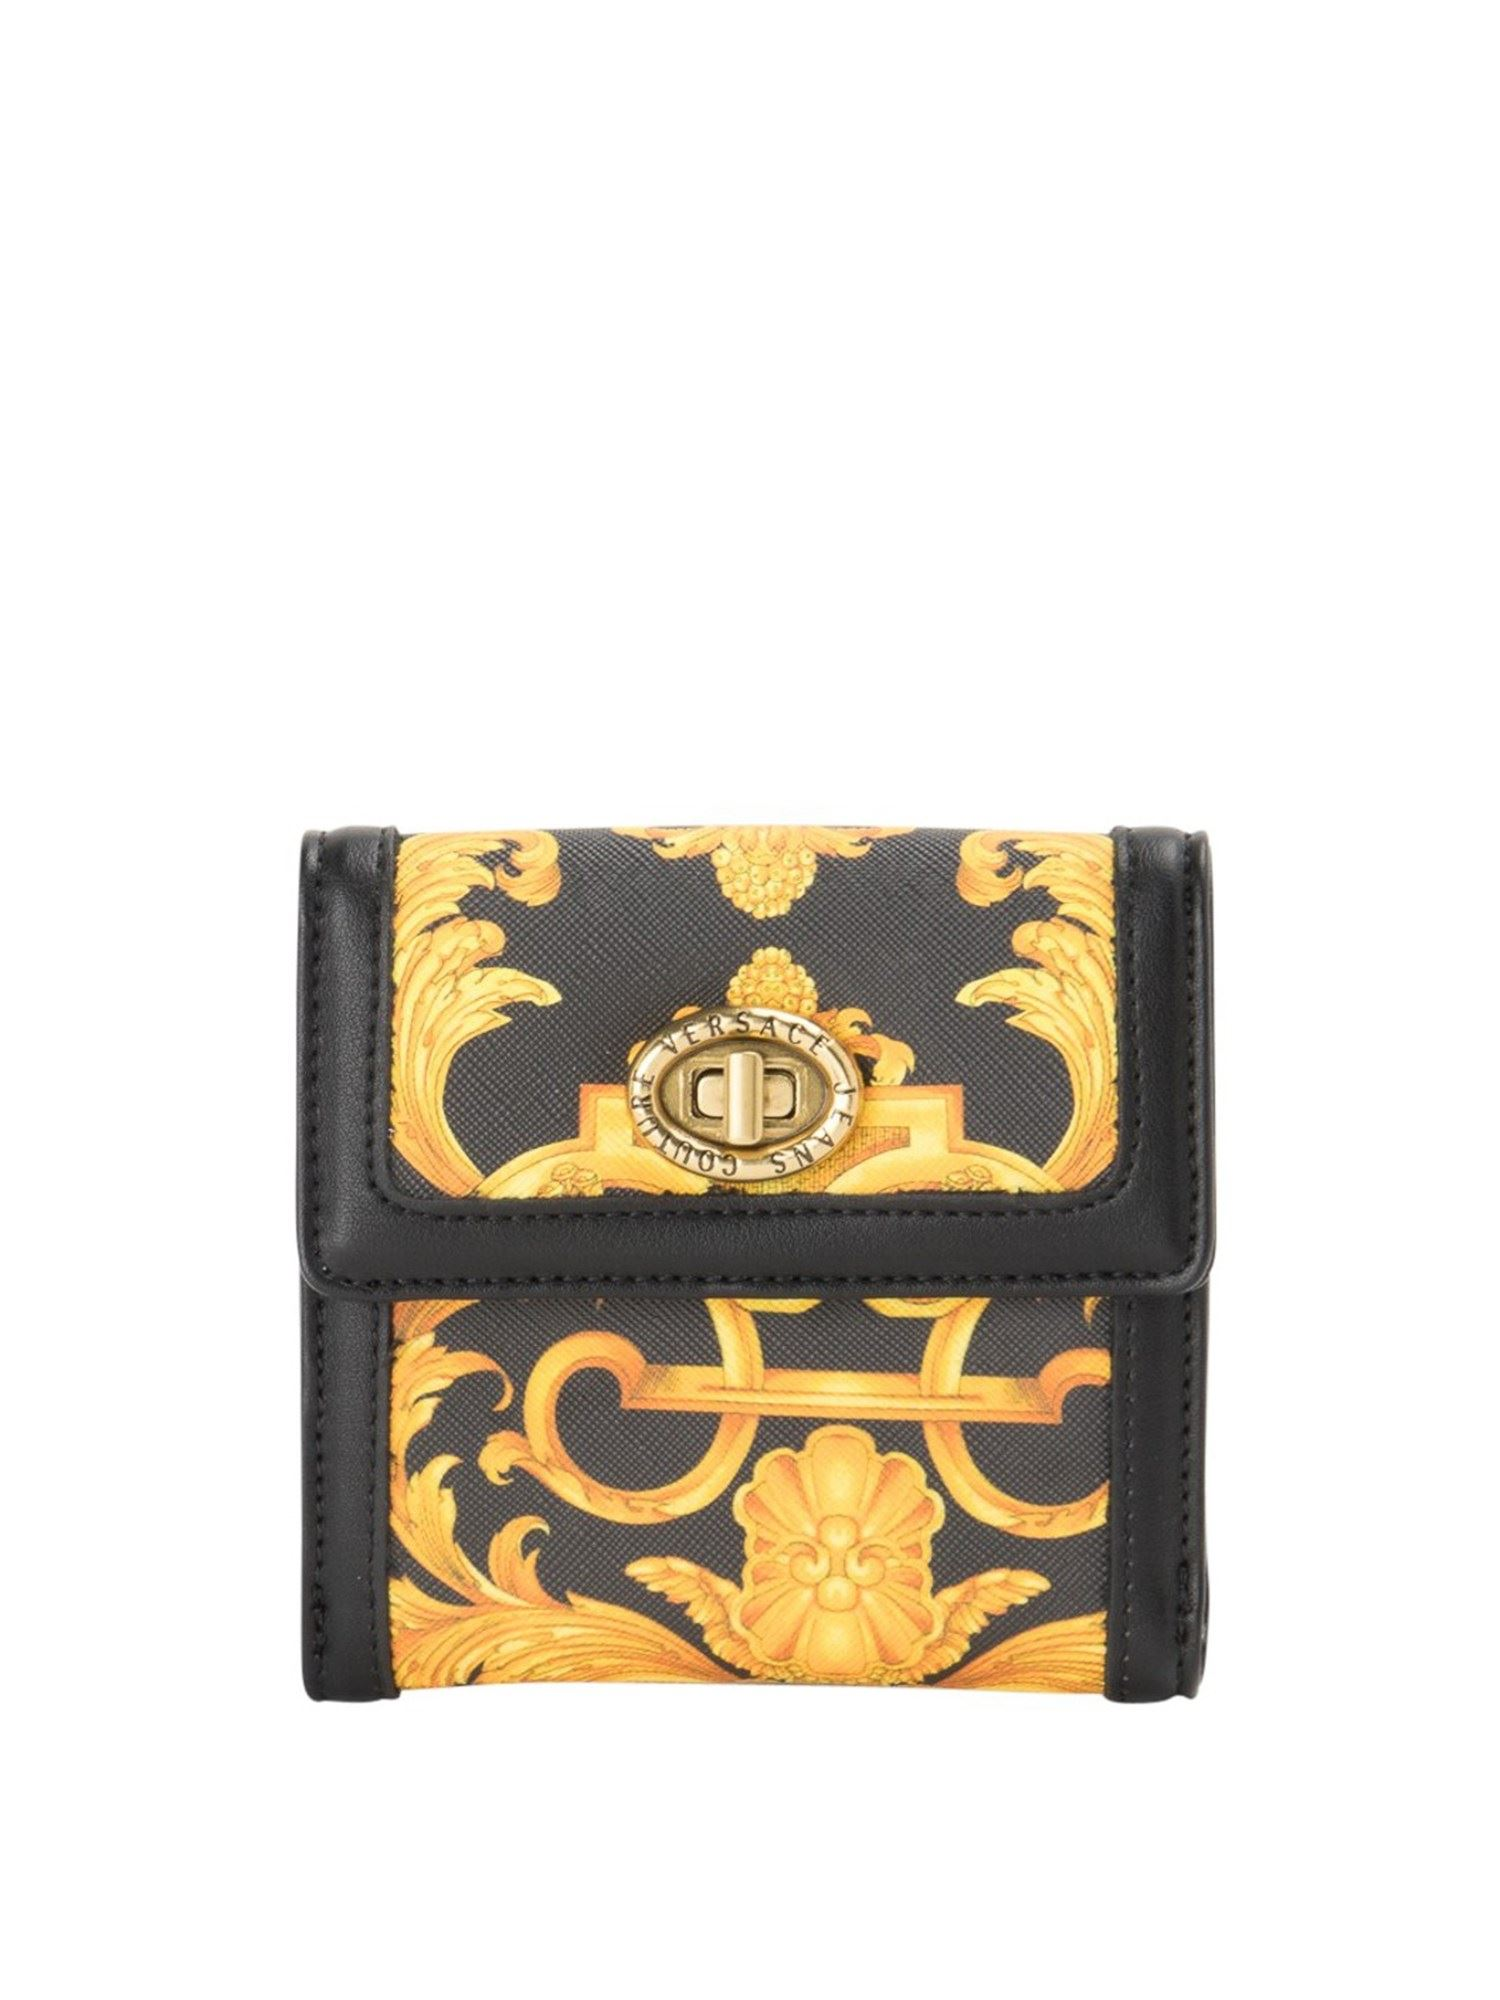 Versace Jeans Couture Wallets BAROQUE PRINT BIFOLD WALLET IN BLACK